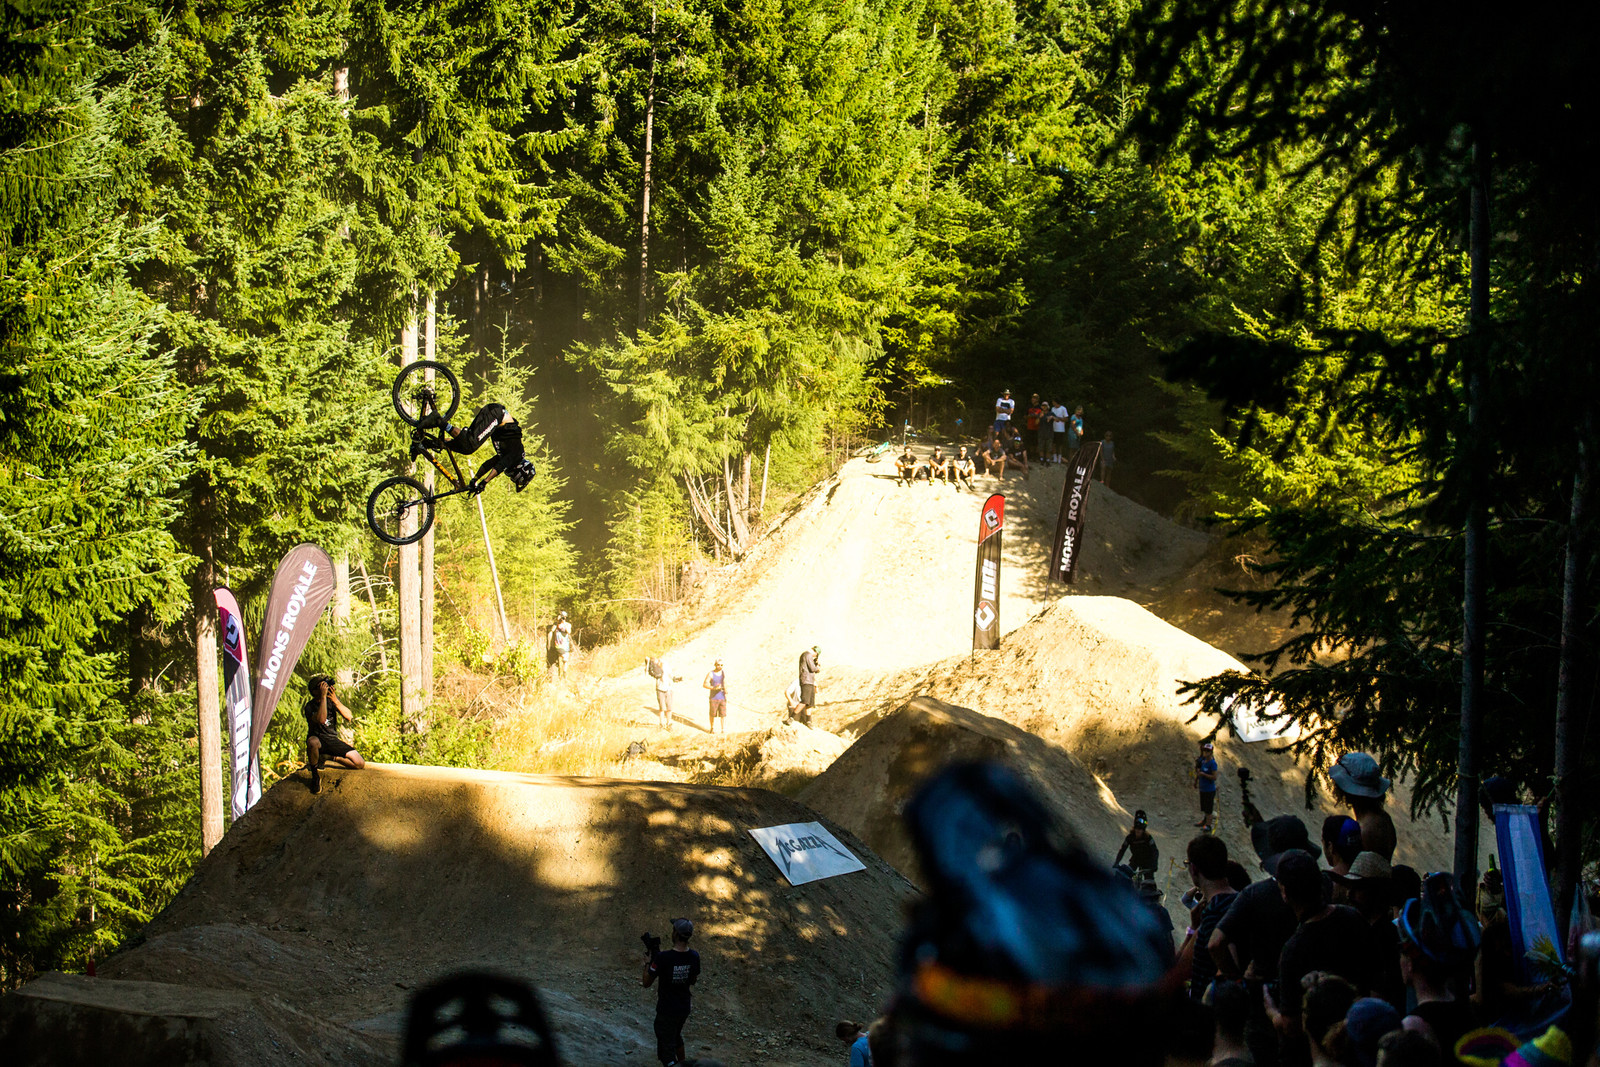 Ryan Howard - McGazza Fest Dream Track Jam - Mountain Biking Pictures - Vital MTB